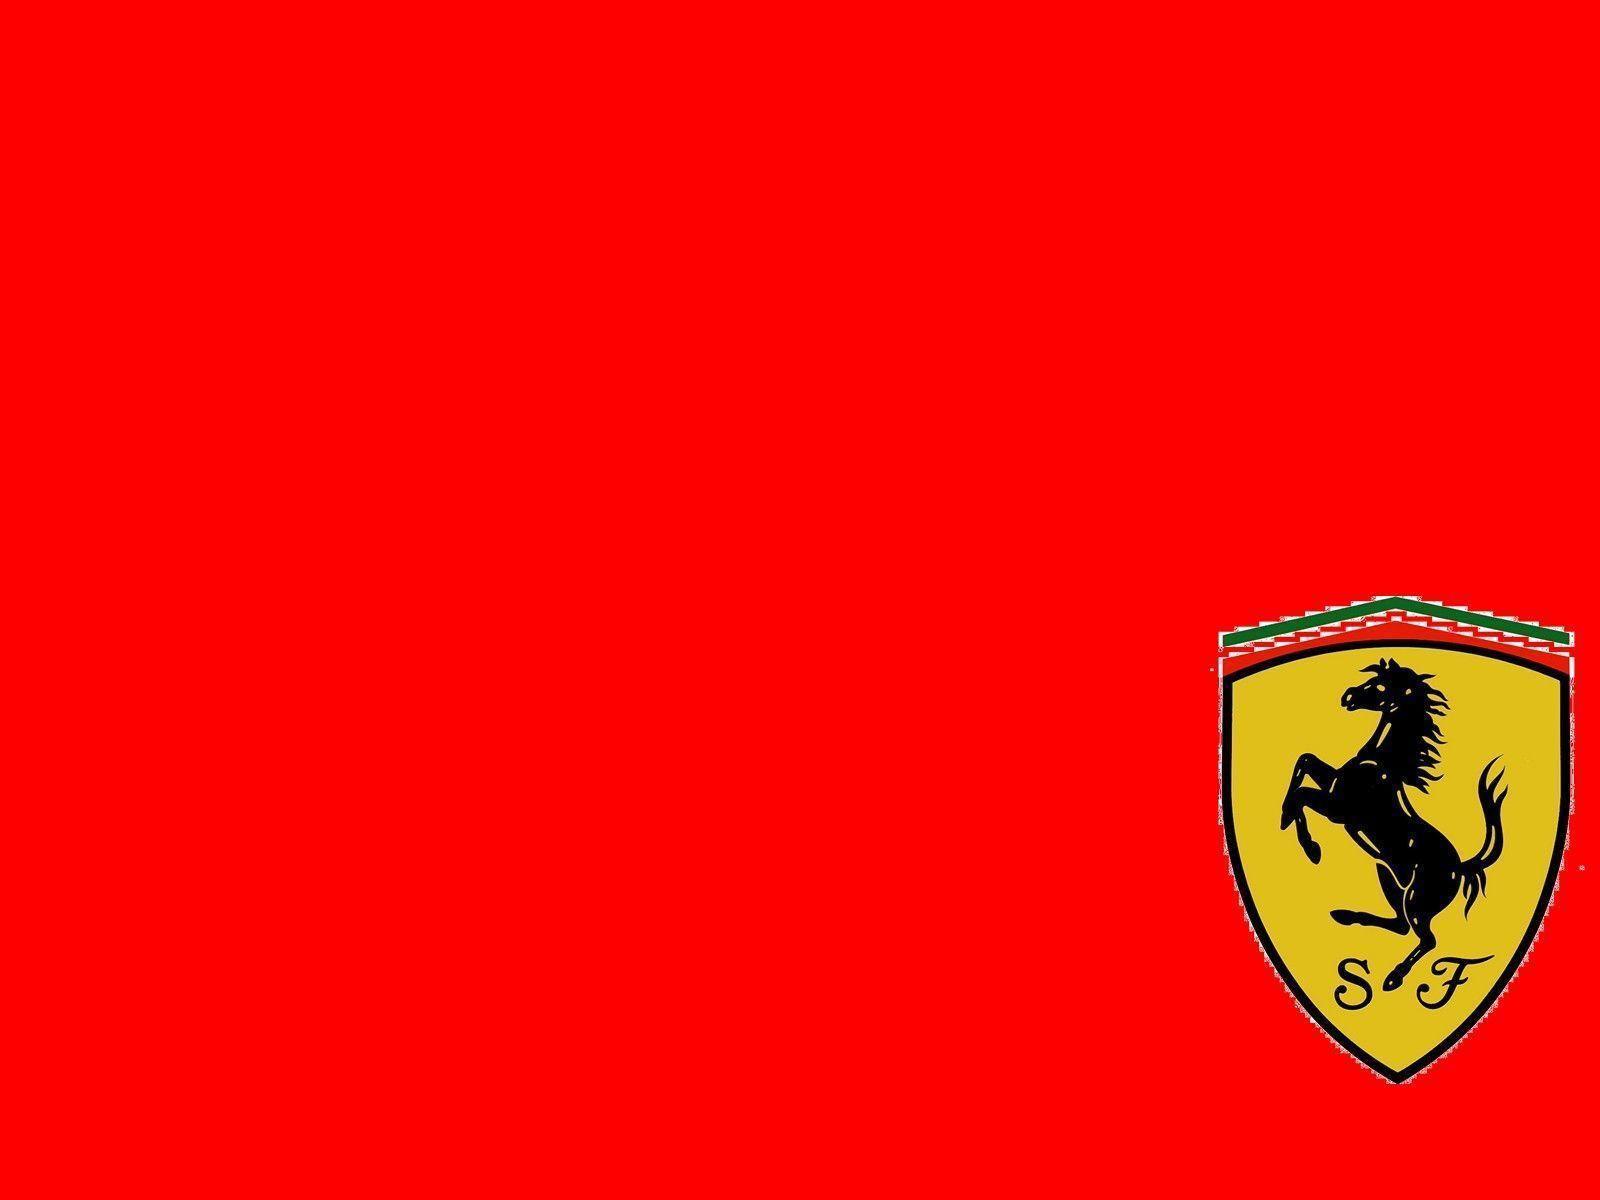 Ferrari Logo Wallpaper 40 Backgrounds | Wallruru.